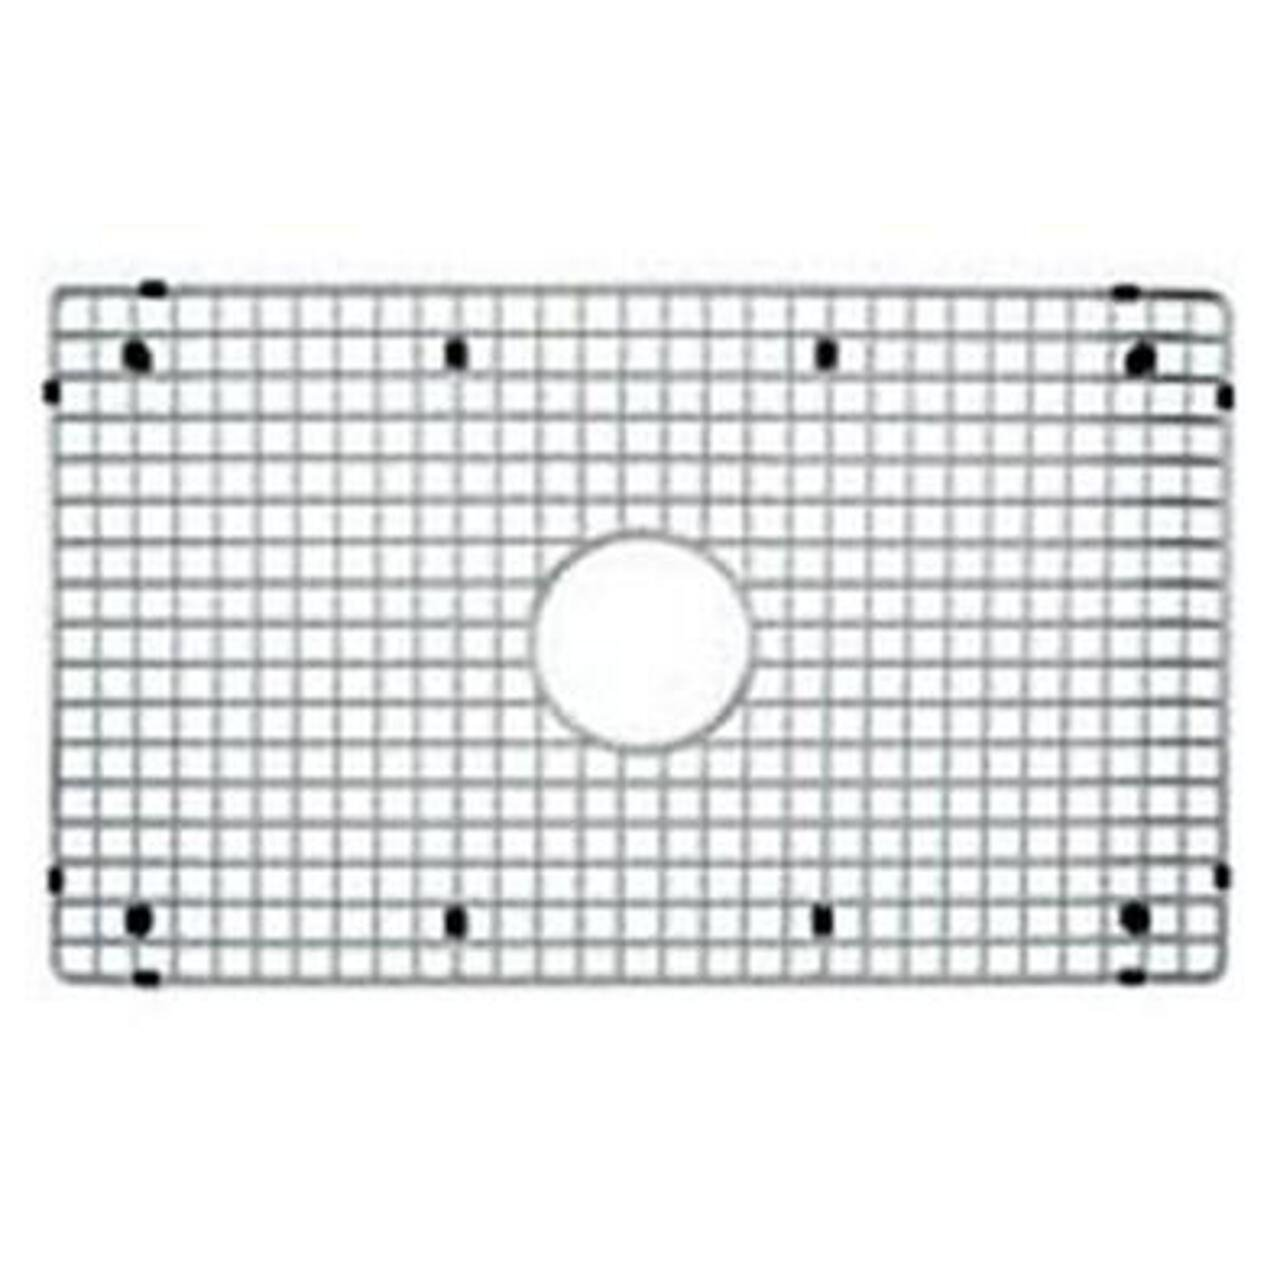 Blanco 229560 Stainless Steel Sink Grid for Cerana 30-Inch Bowl ...